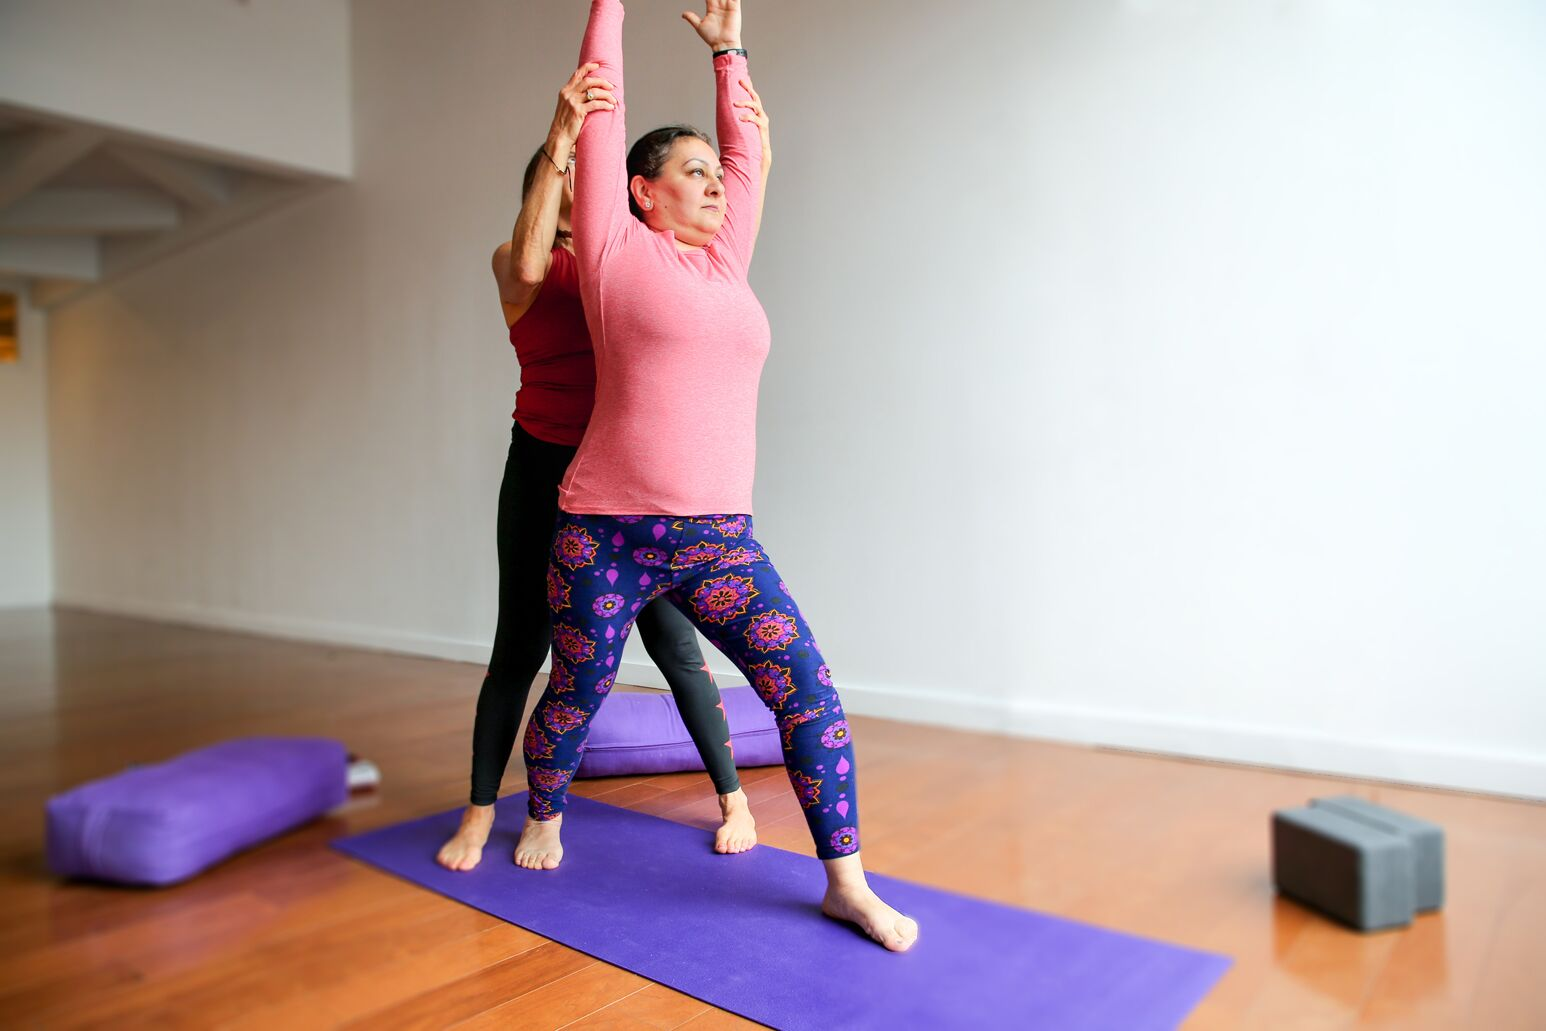 Kathy Khodadadi does yoga, part of her newfound healthy lifestyle after being diagnosed with nonobstructive coronary artery disease.